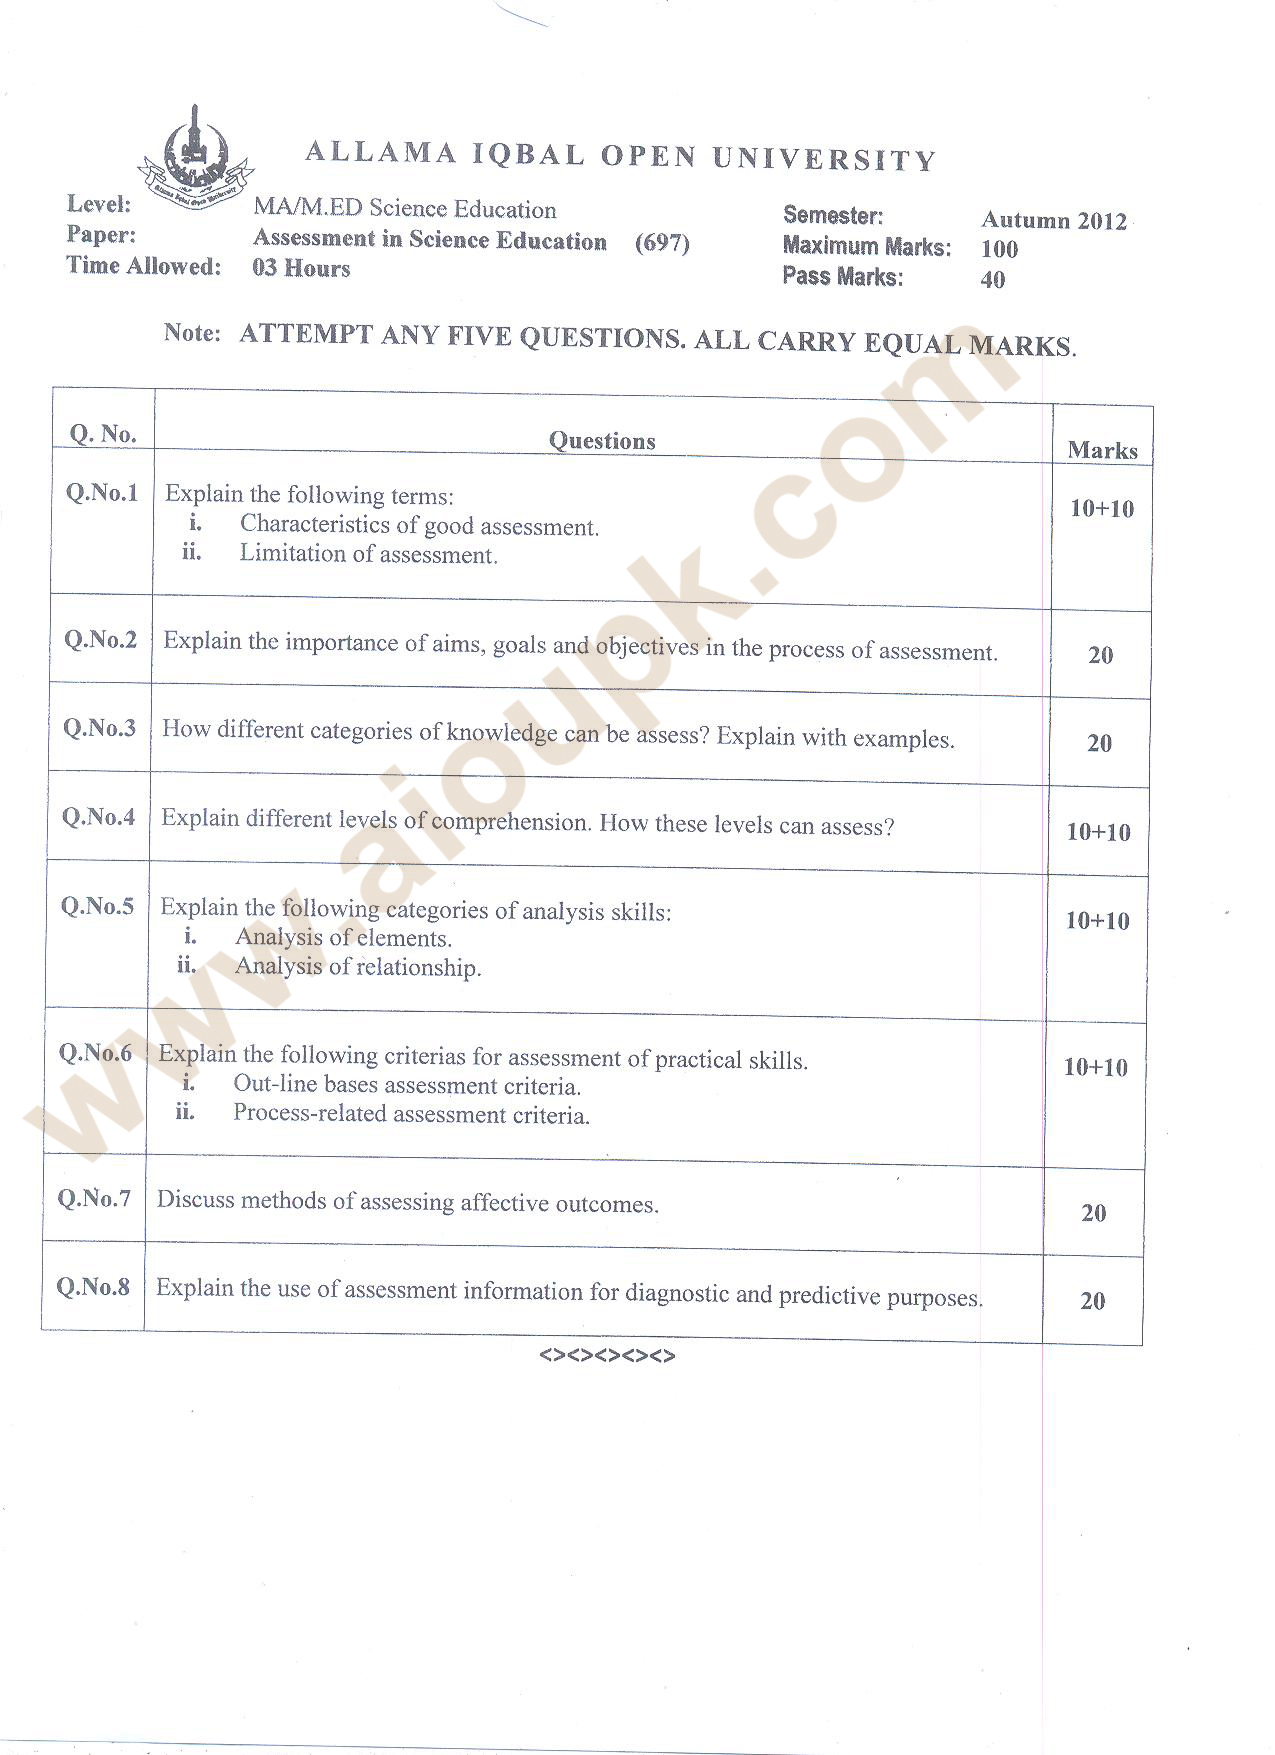 Assessment In Science Education Code 697 M Ed Ma Aiou Old Papers Autumn